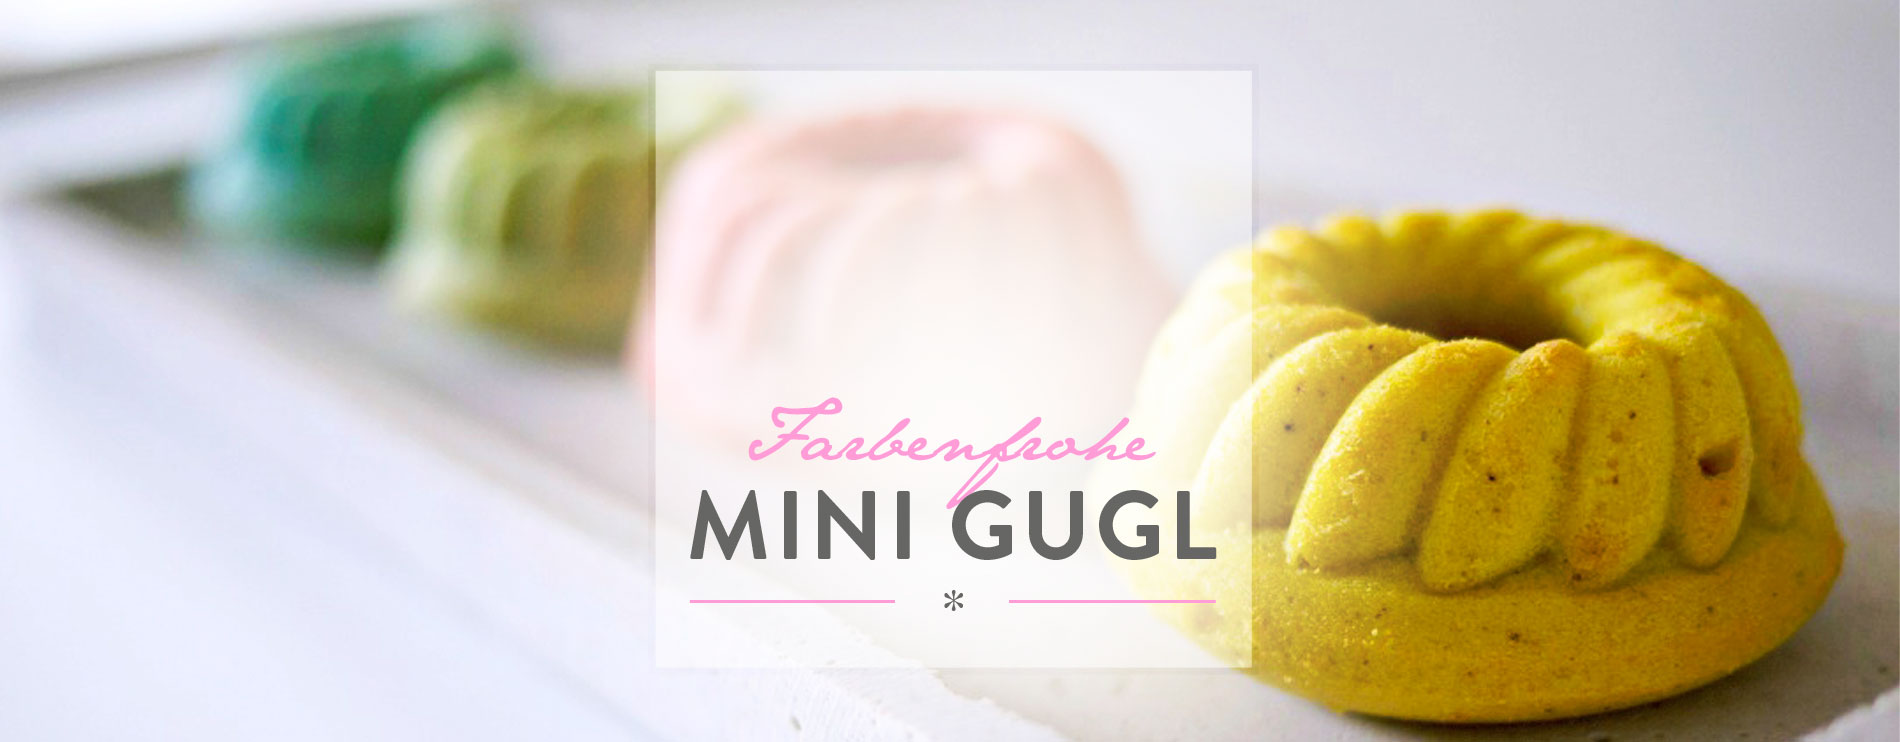 Header Farbenfrohe Mini-Gugl